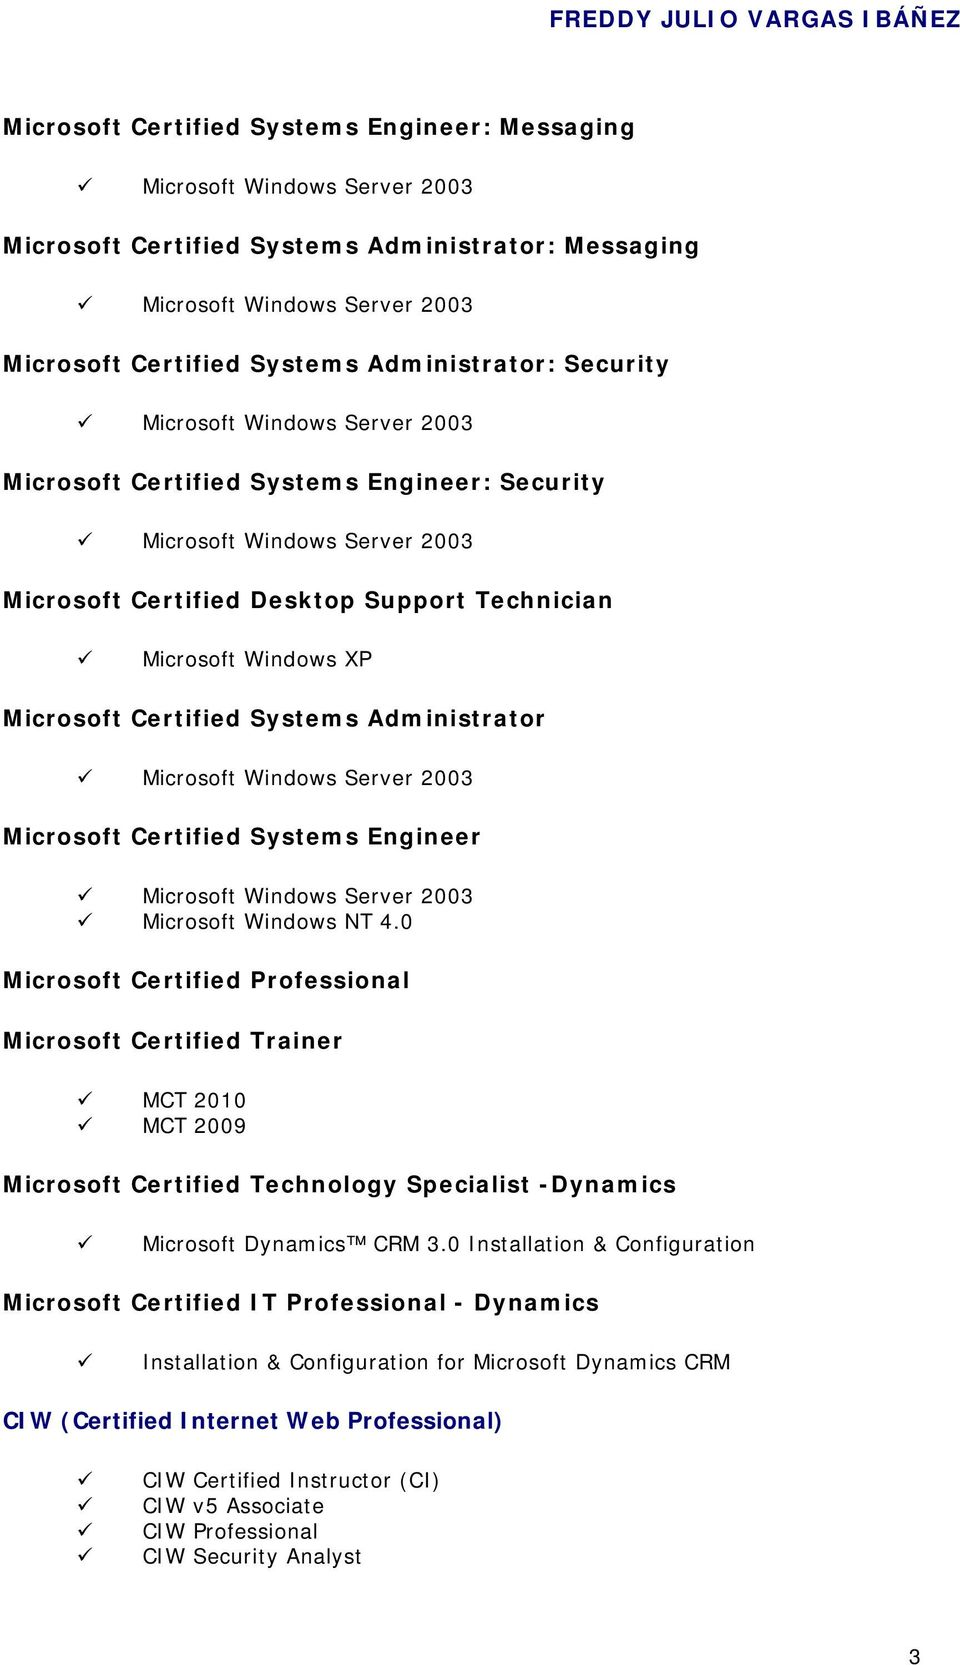 Microsoft Certified Systems Administrator Microsoft Windows Server 2003 Microsoft Certified Systems Engineer Microsoft Windows Server 2003 Microsoft Windows NT 4.